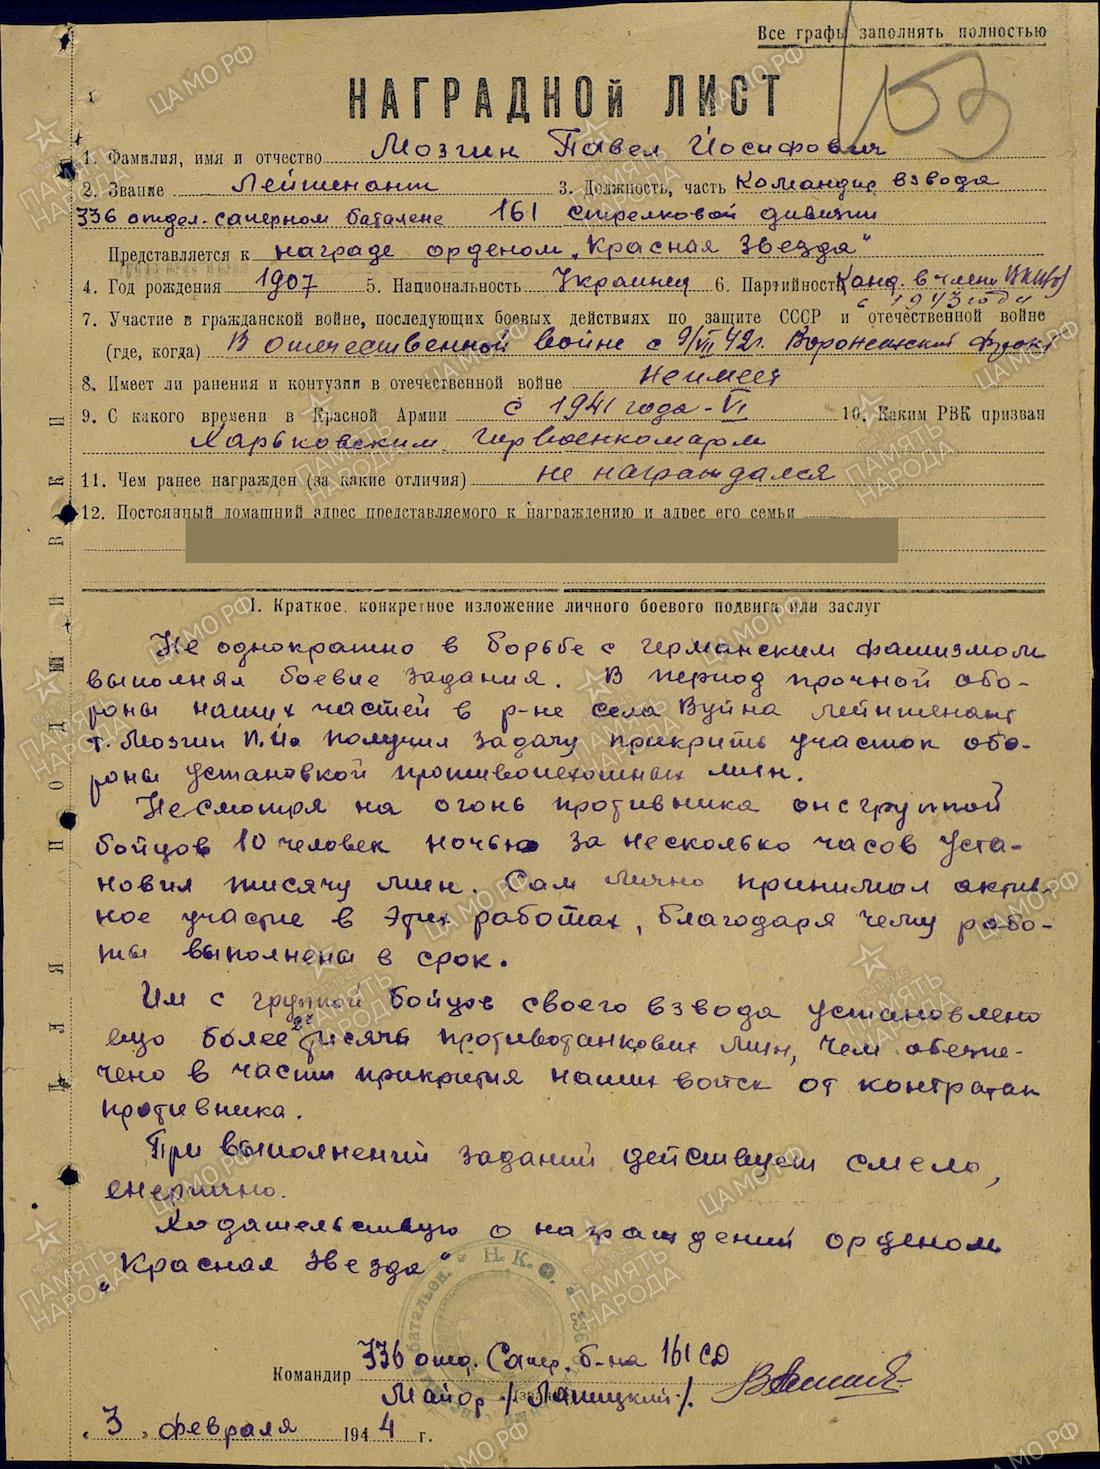 USSR army postcard Sapper MOZGIN part 7.jpg